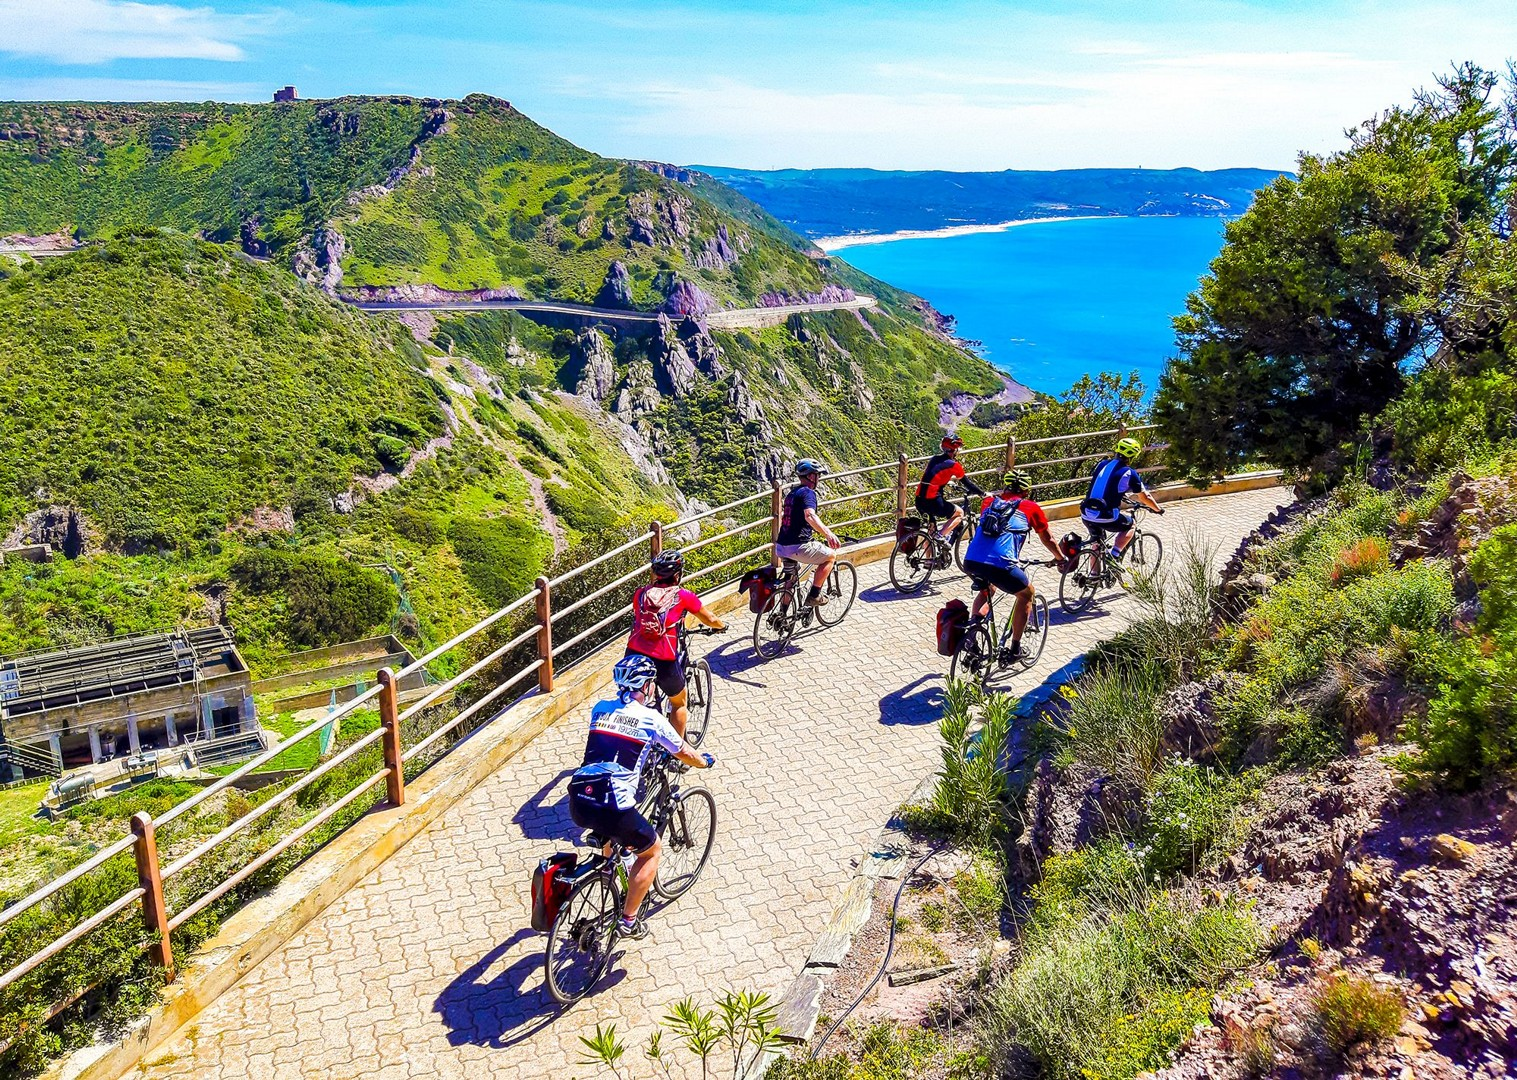 20190508_151532.jpg - Italy - Sardinia - Island Flavours - Guided Leisure Cycling Holiday - Leisure Cycling